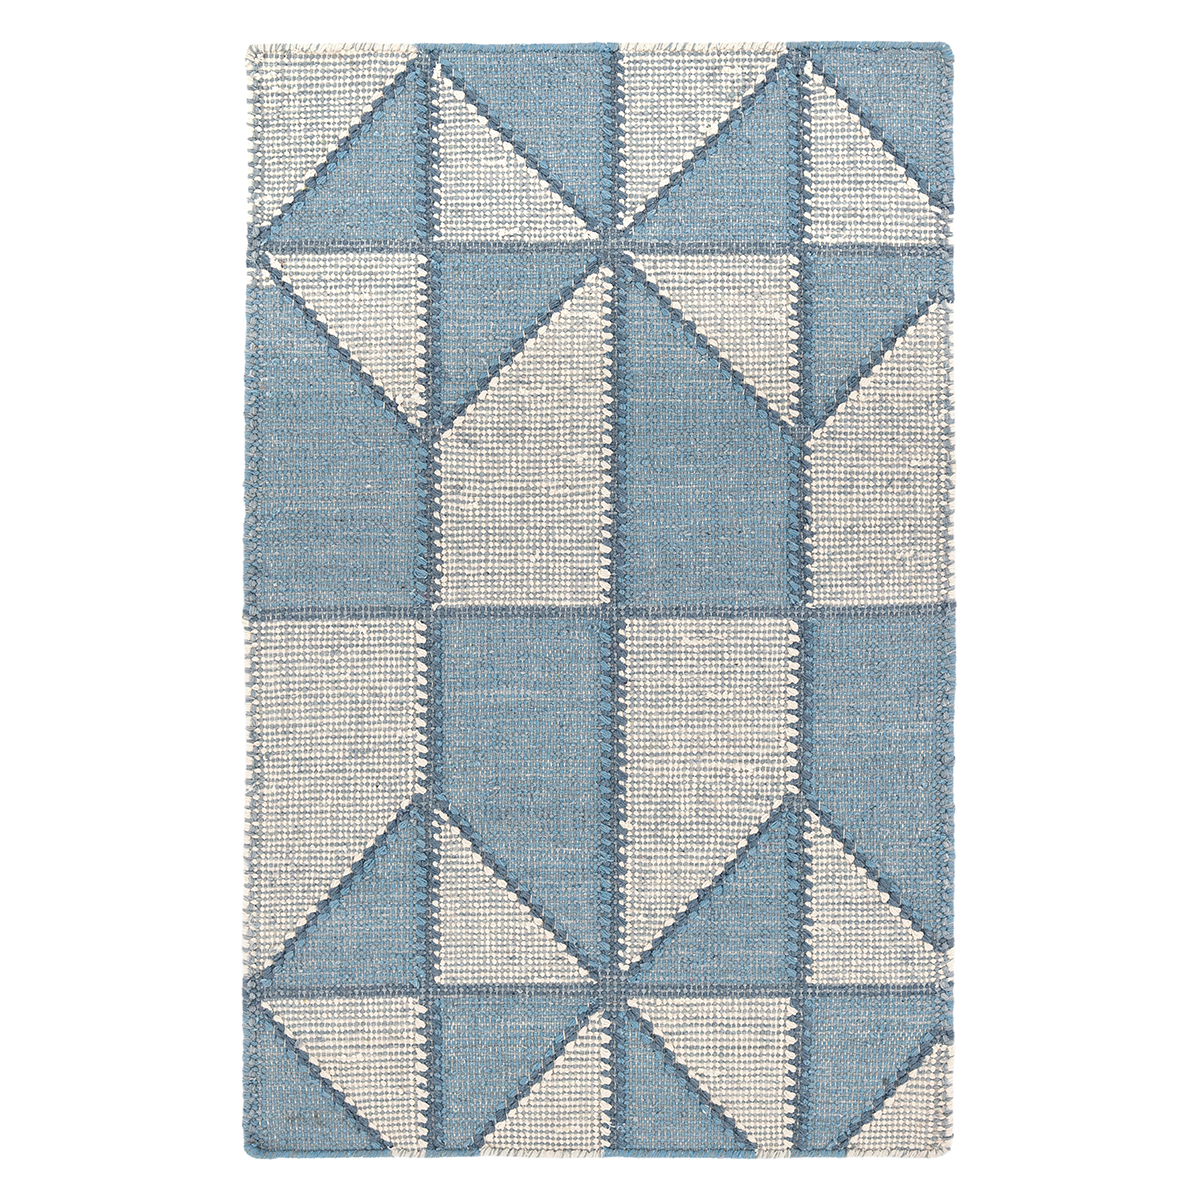 Furbish Studio - Highlands Rug blue loom knotted cotton rug